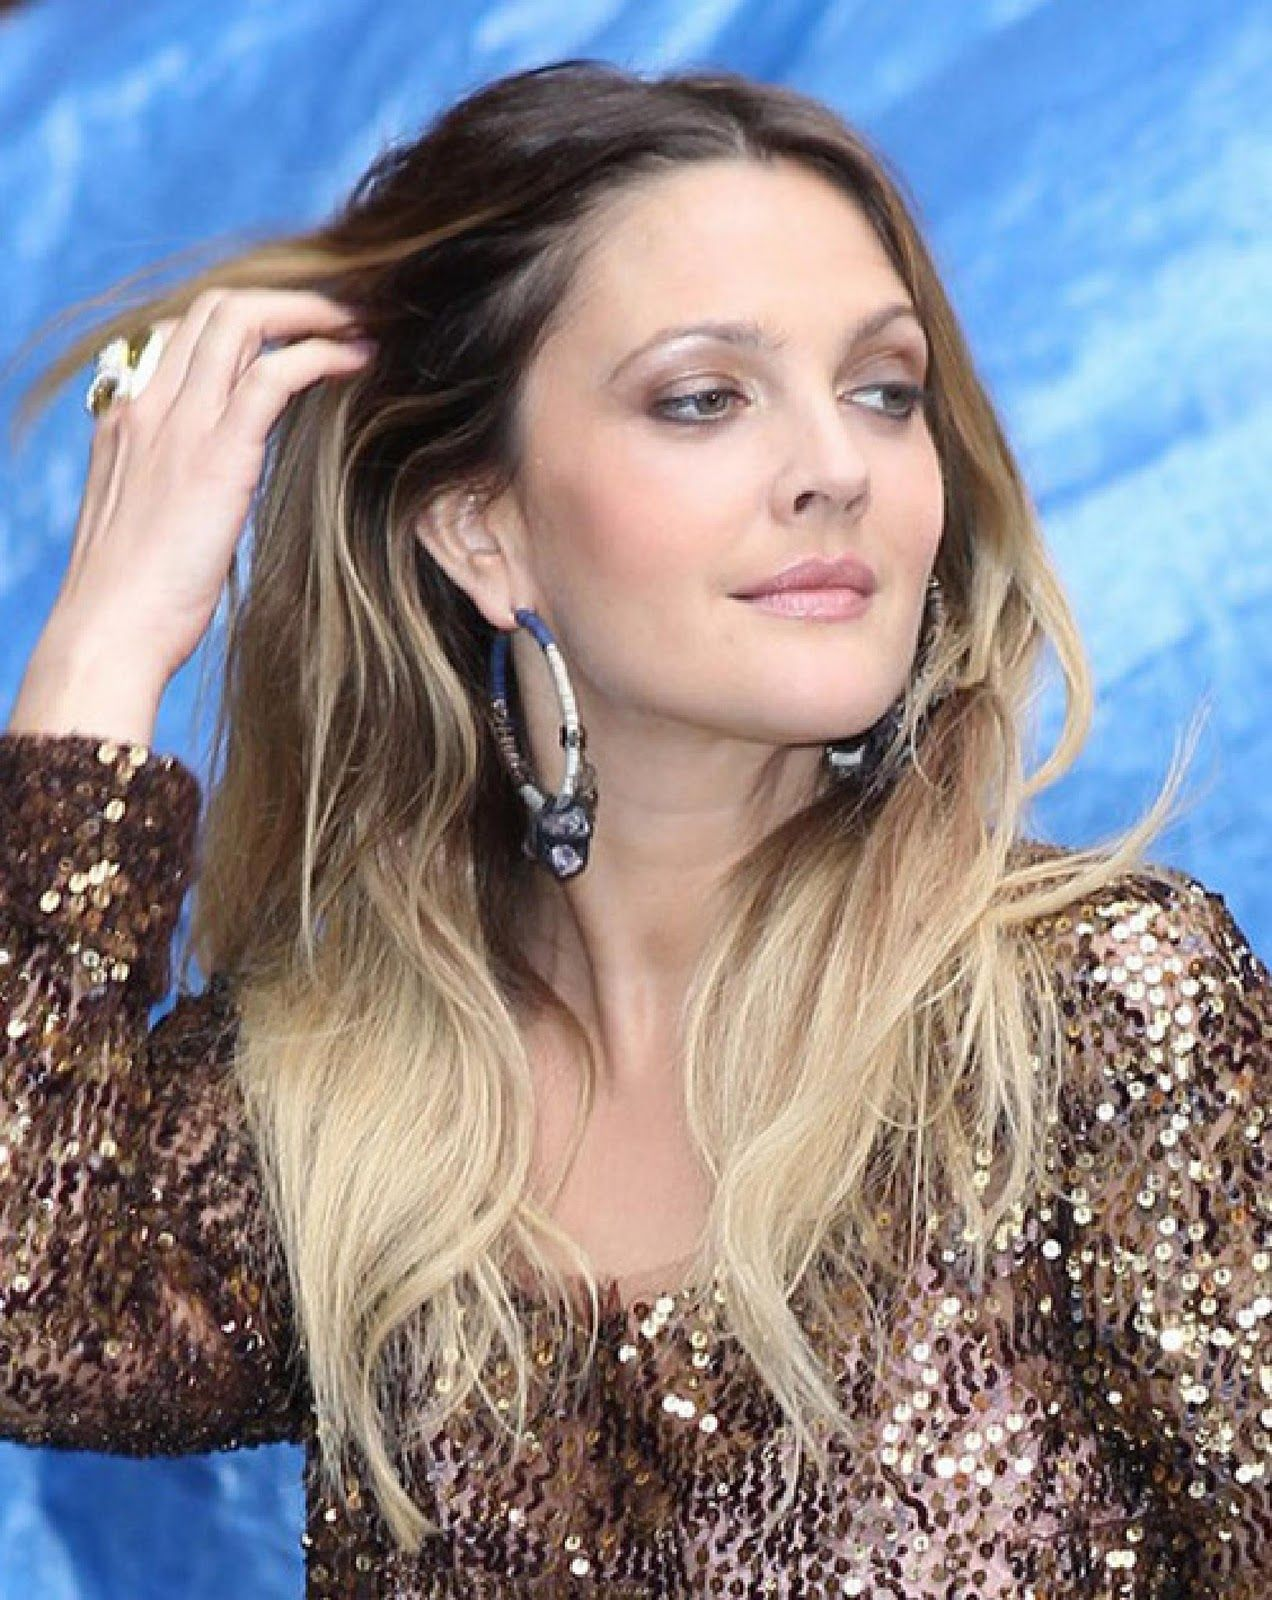 Ombre Hair Eventually One Day Some Also Drew Barrymore Seems Like Such A Peach